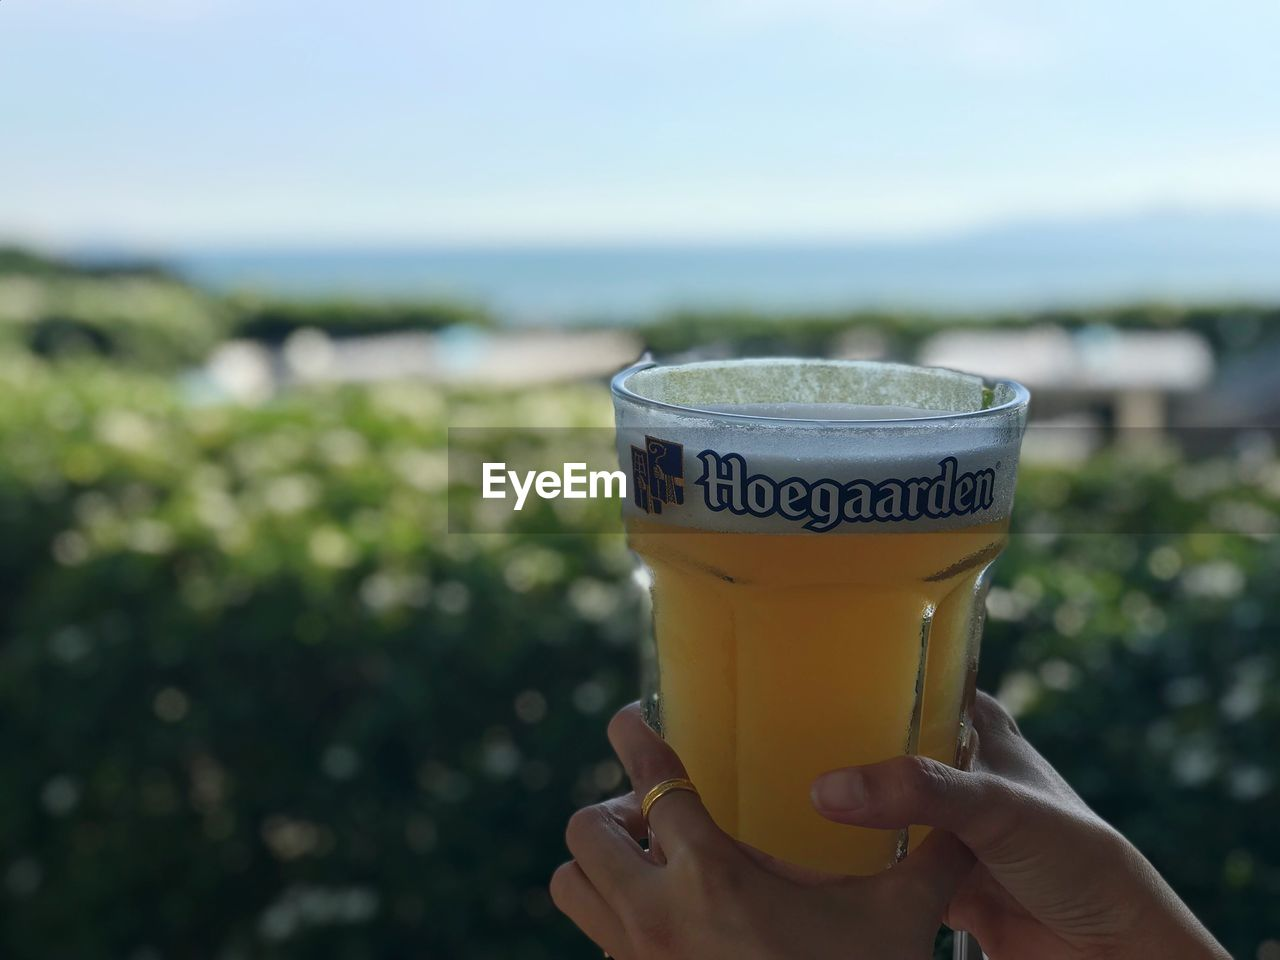 human hand, holding, hand, one person, focus on foreground, food and drink, human body part, drink, real people, unrecognizable person, day, refreshment, close-up, nature, sky, lifestyles, text, freshness, finger, outdoors, glass